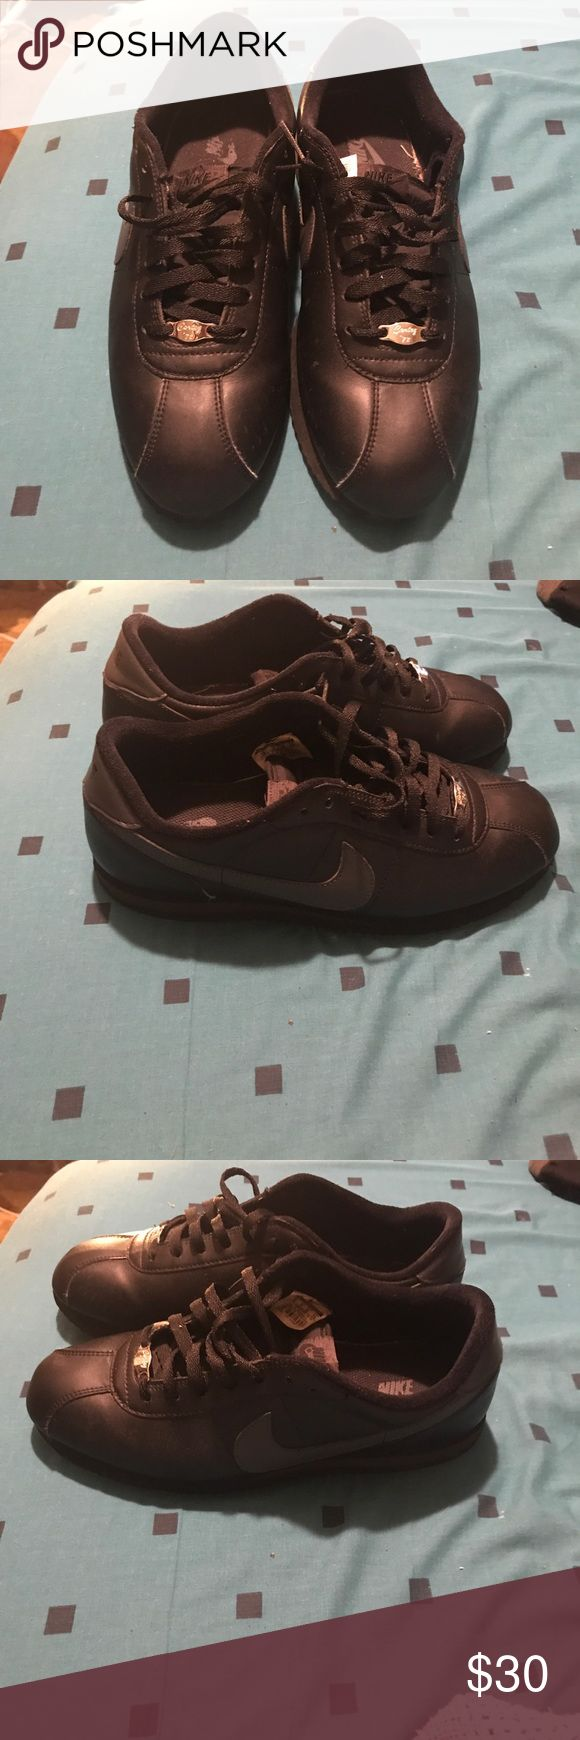 Black Nike Leather Cortez GUC Black Leather Cortez Grey Check. Need a wipe down, lots of life left! Make an offer. Authentic no 📦. Nike Shoes Sneakers